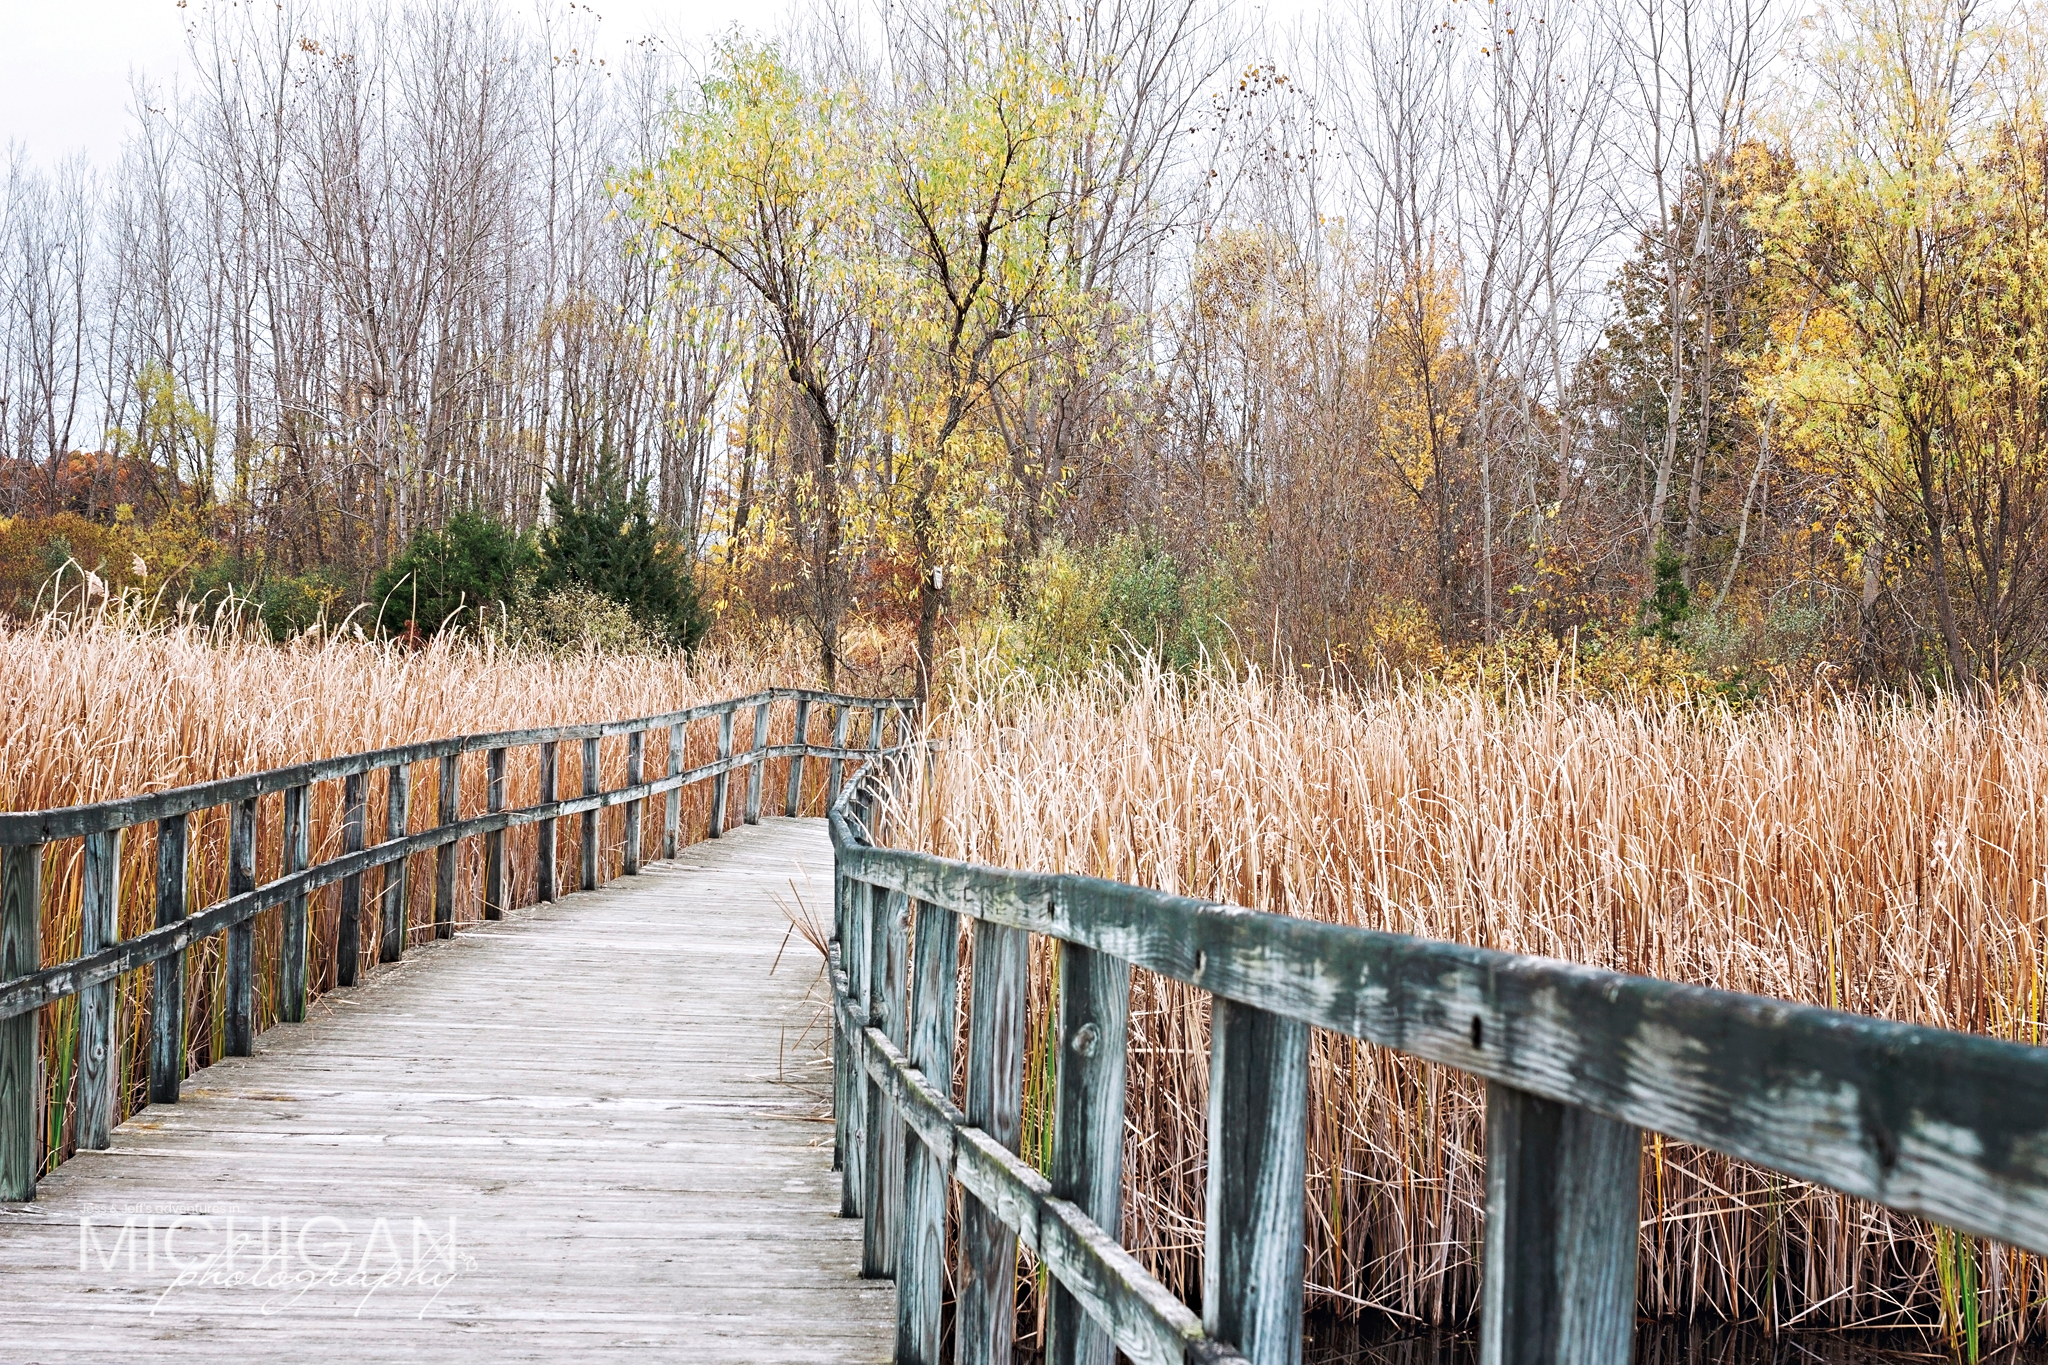 One of the boardwalk trails winding through Crosswinds Marsh.